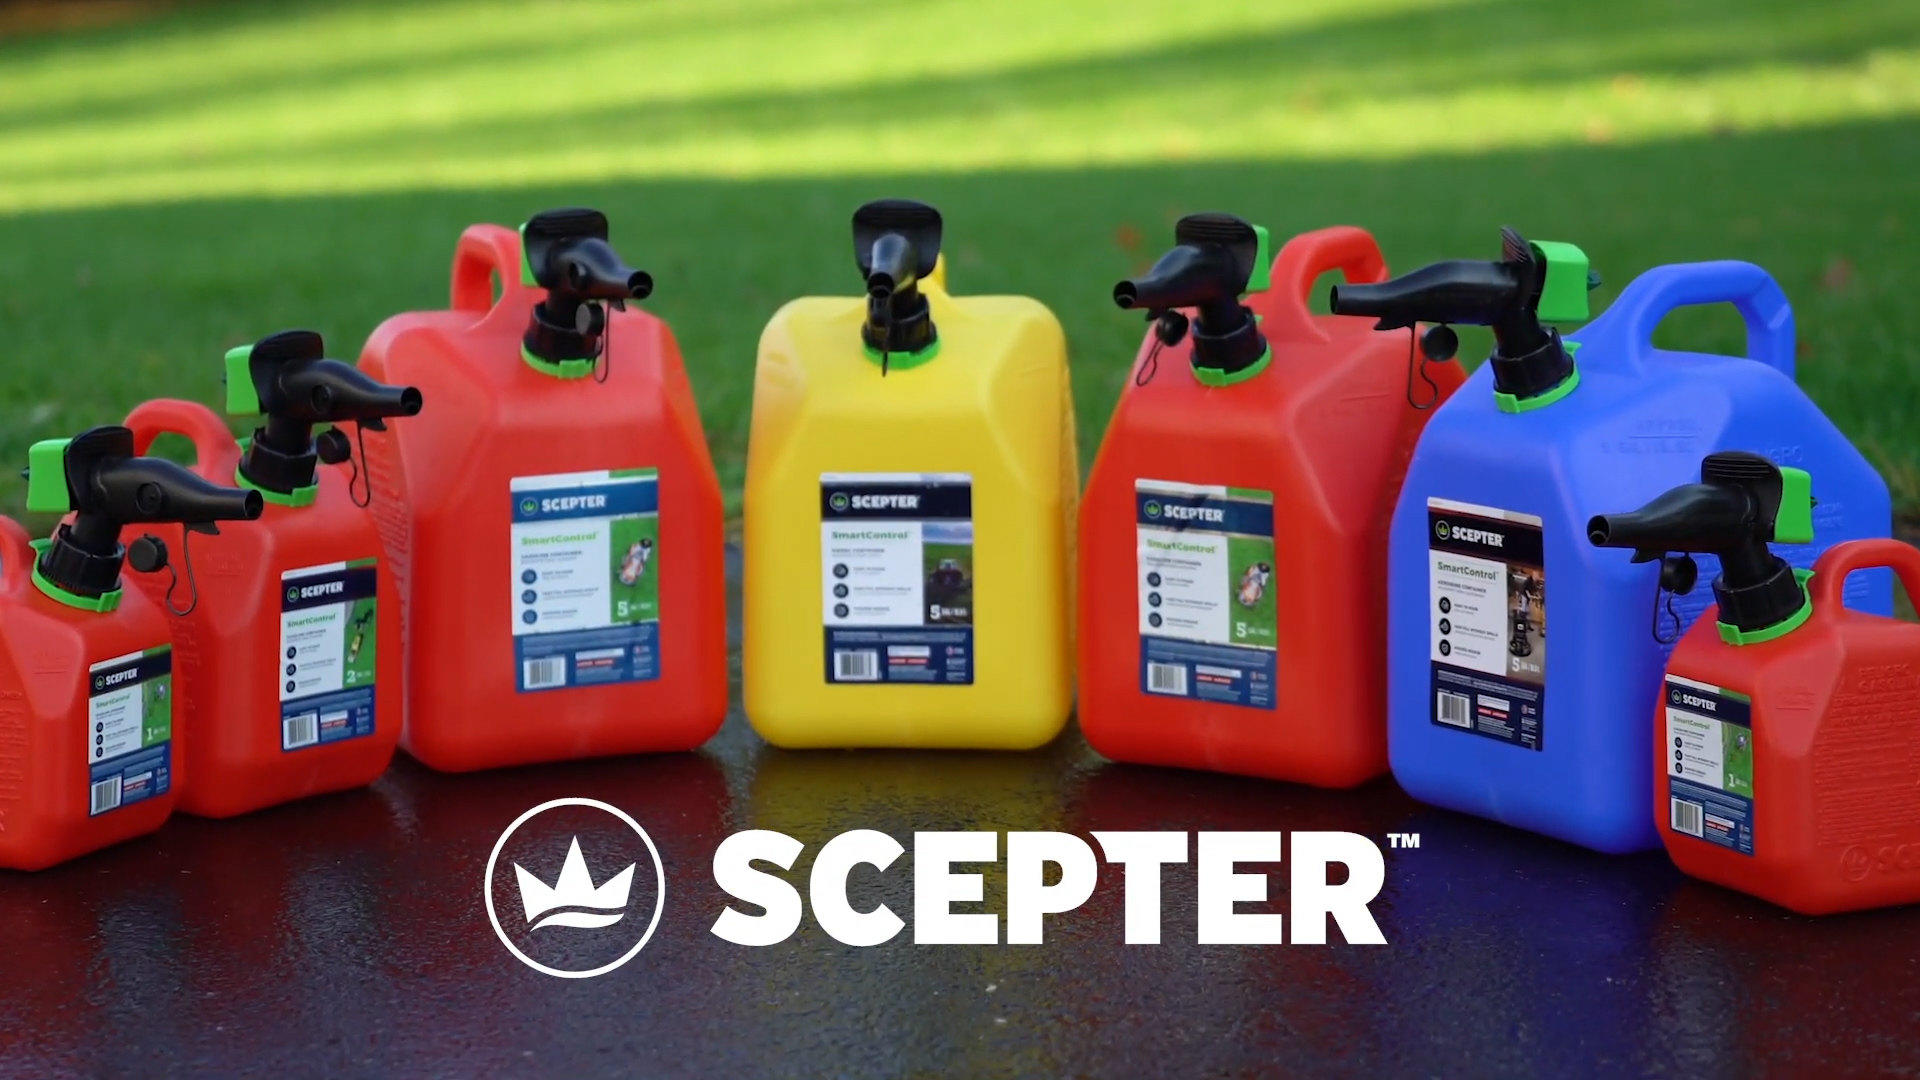 Scepter can help when leaves clean-up relies on fuel 2